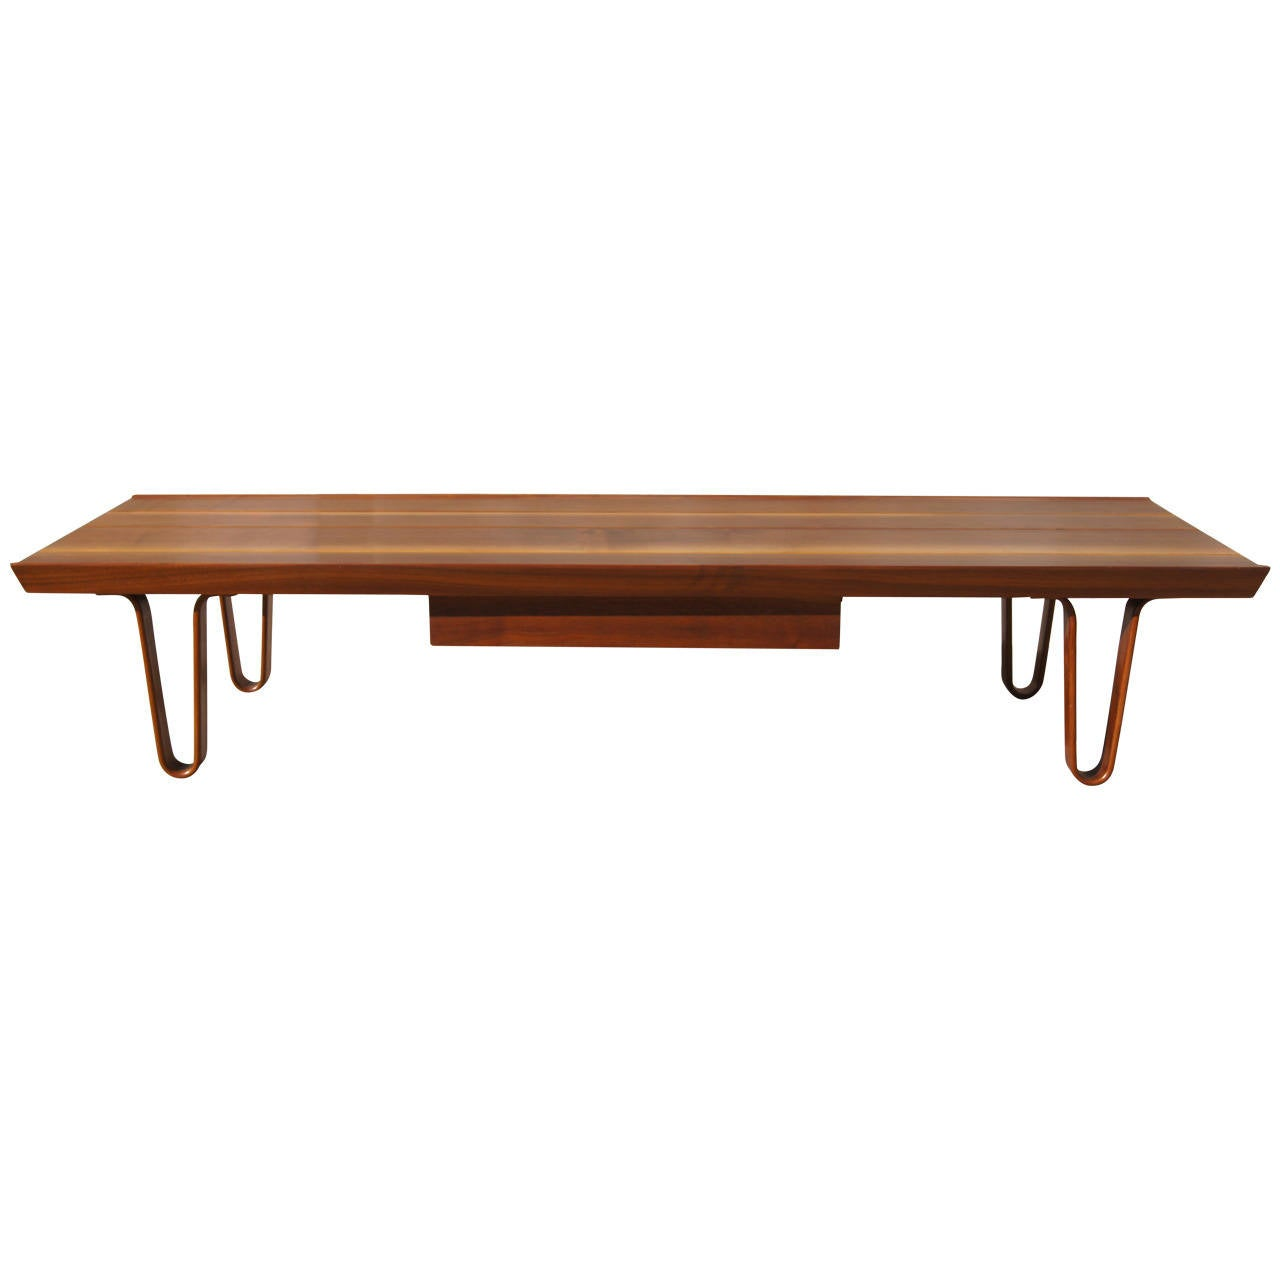 Long john coffee table by edward wormley for dunbar at 1stdibs for Long coffee table